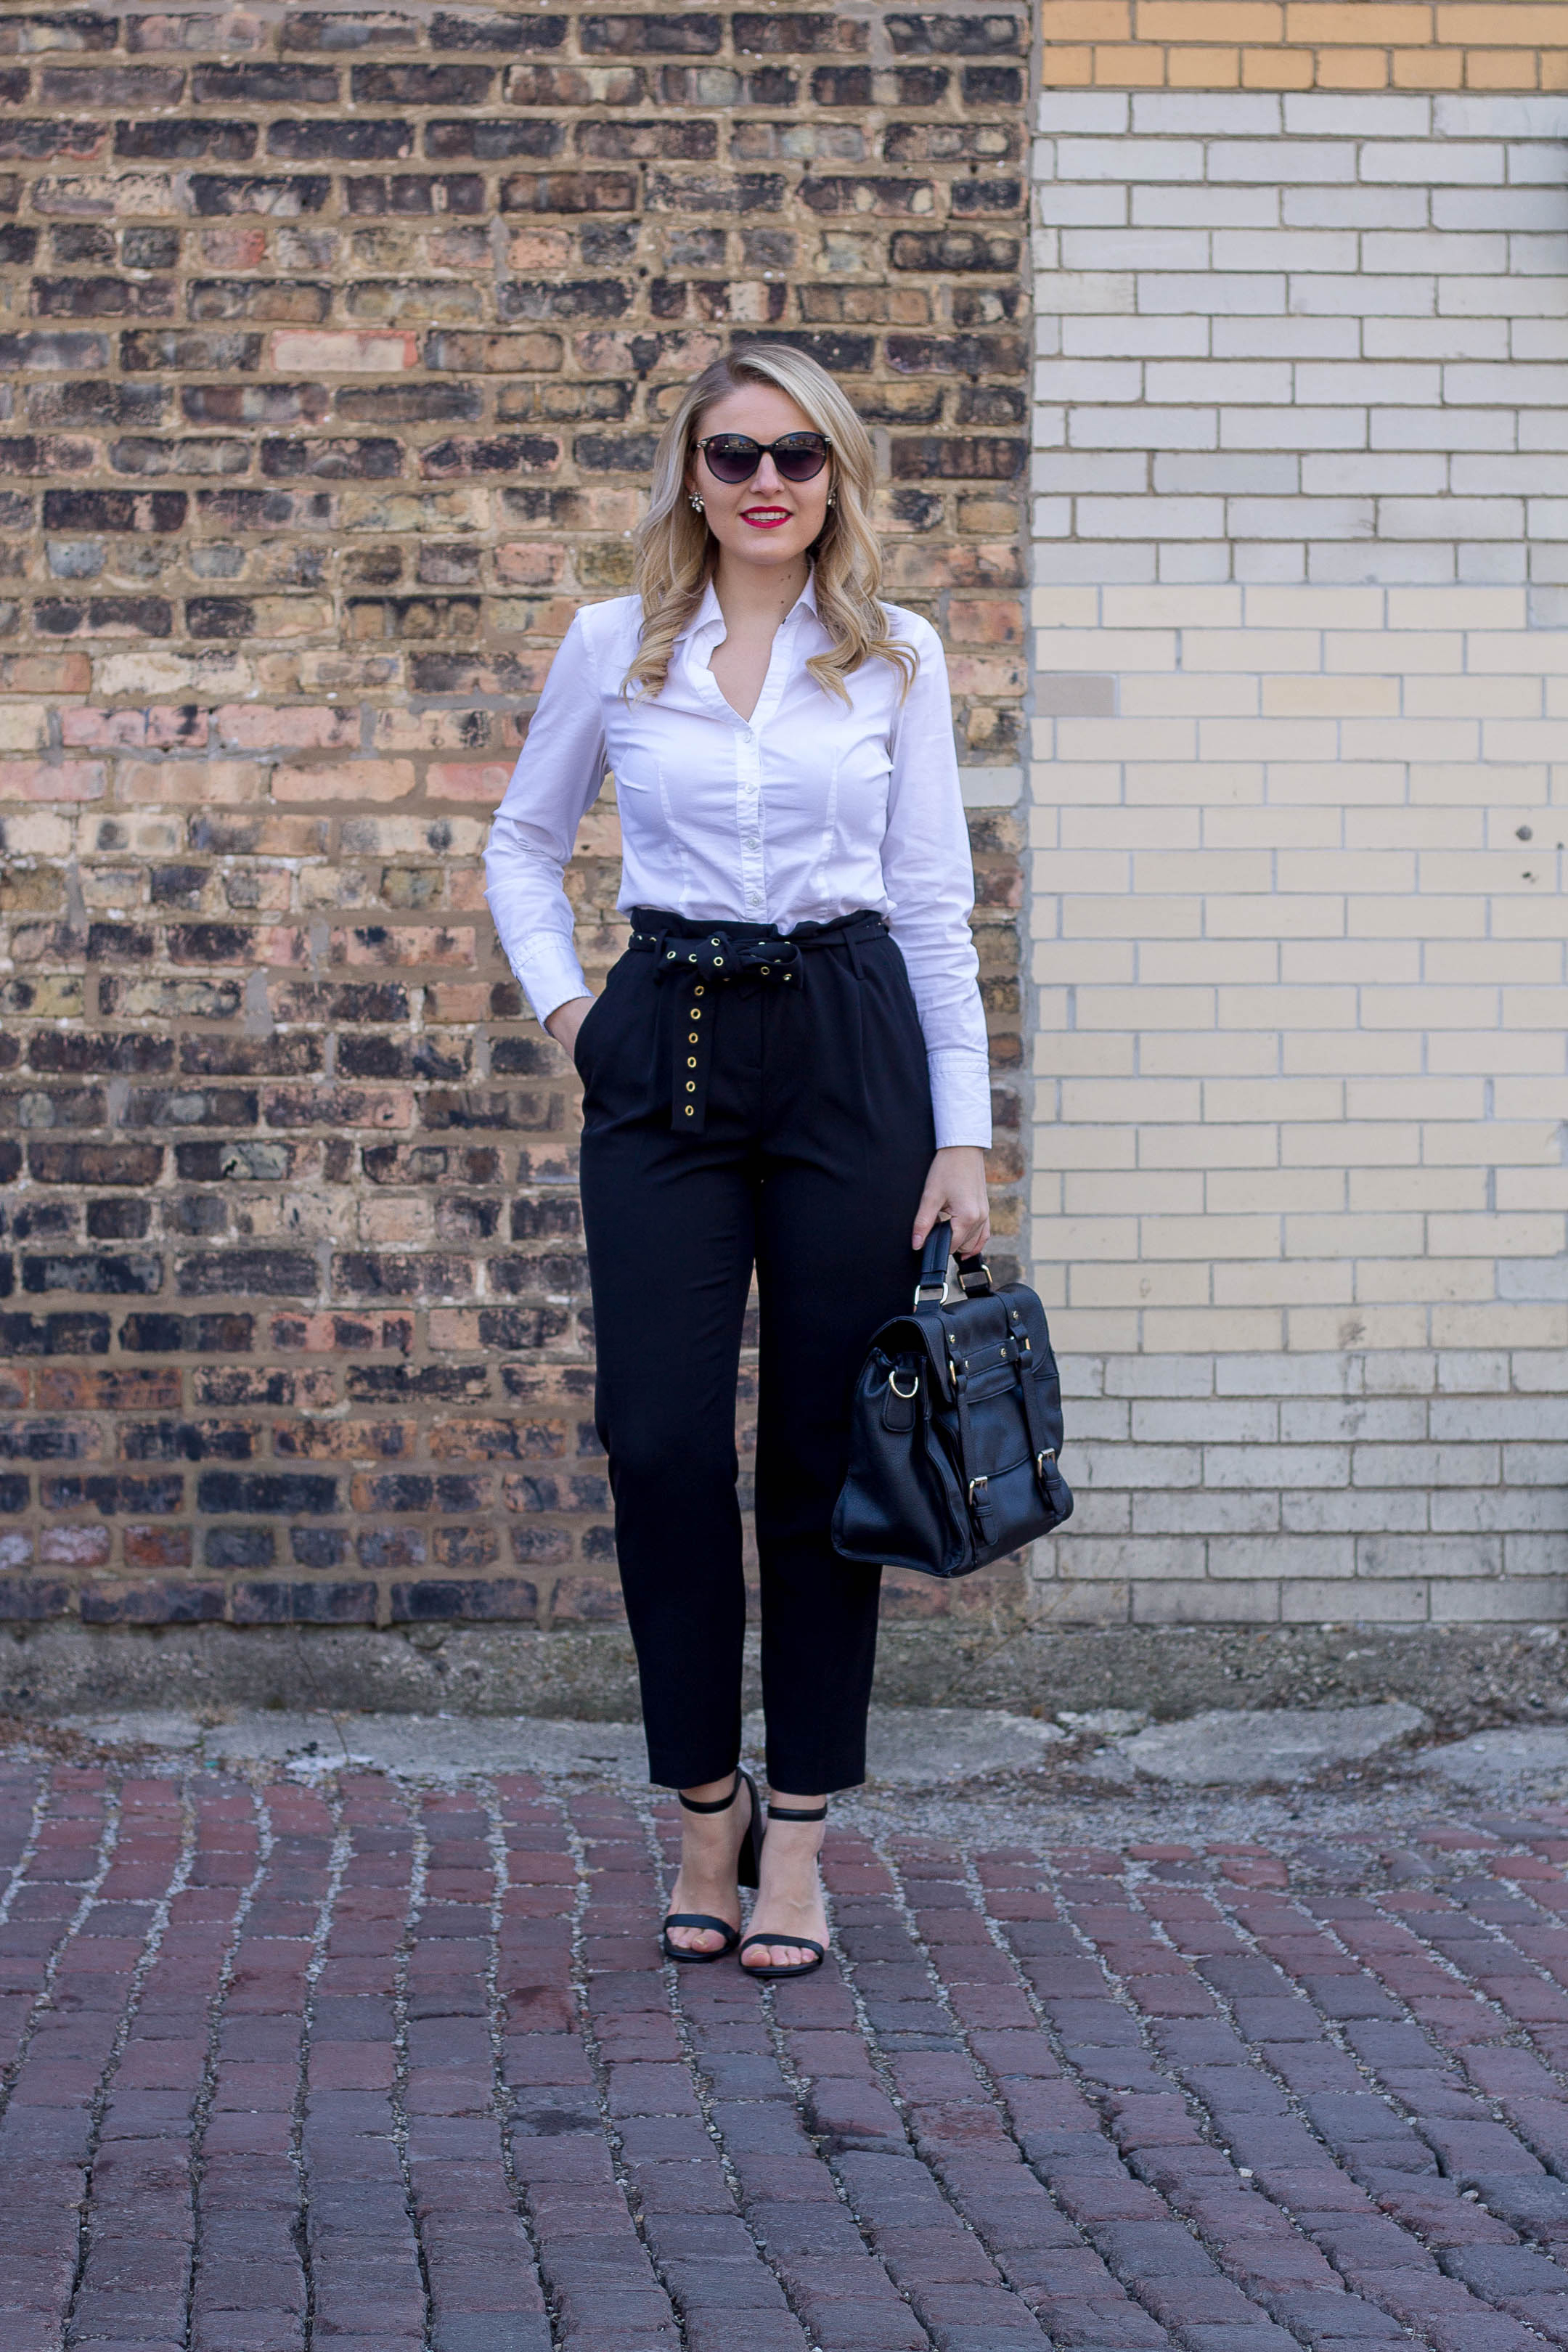 How to wear cropped pants to the office